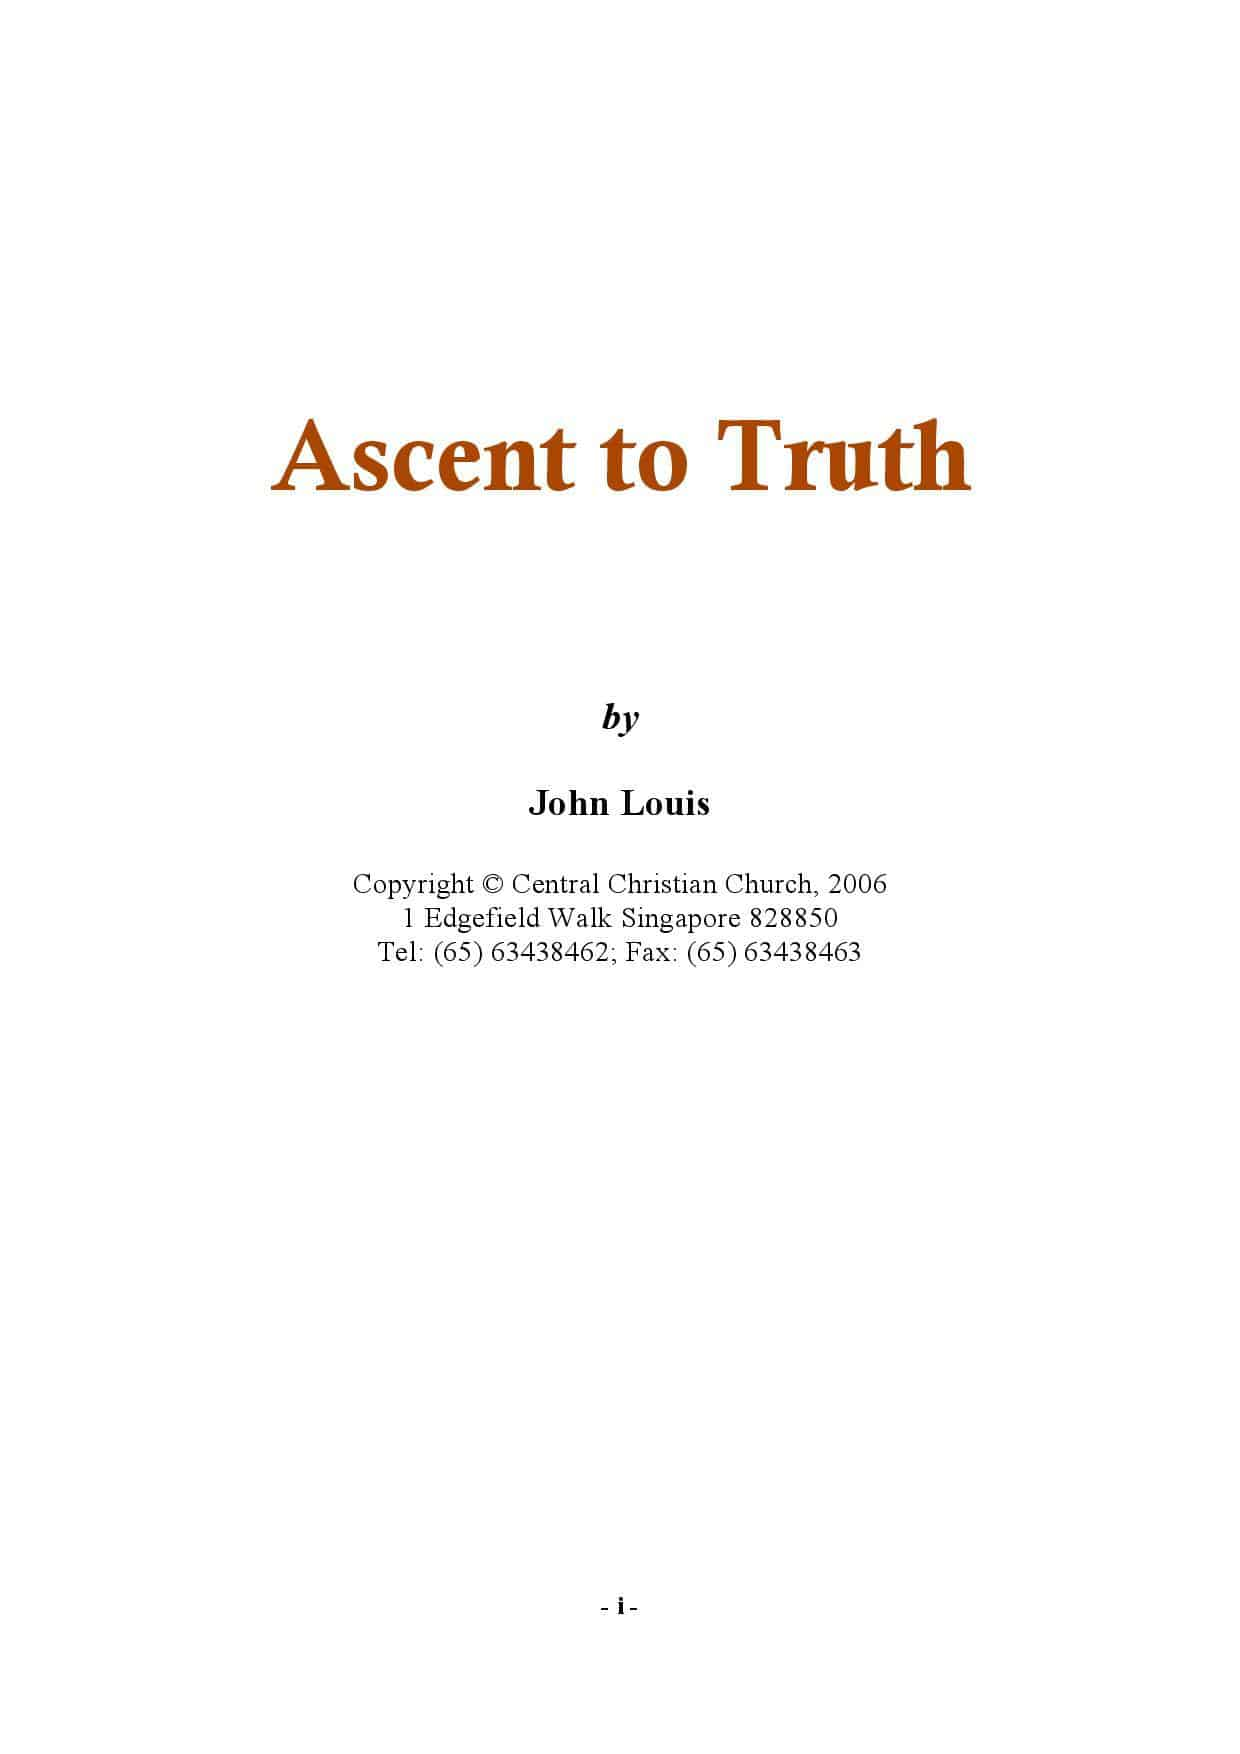 Ascent to Truth (2007)